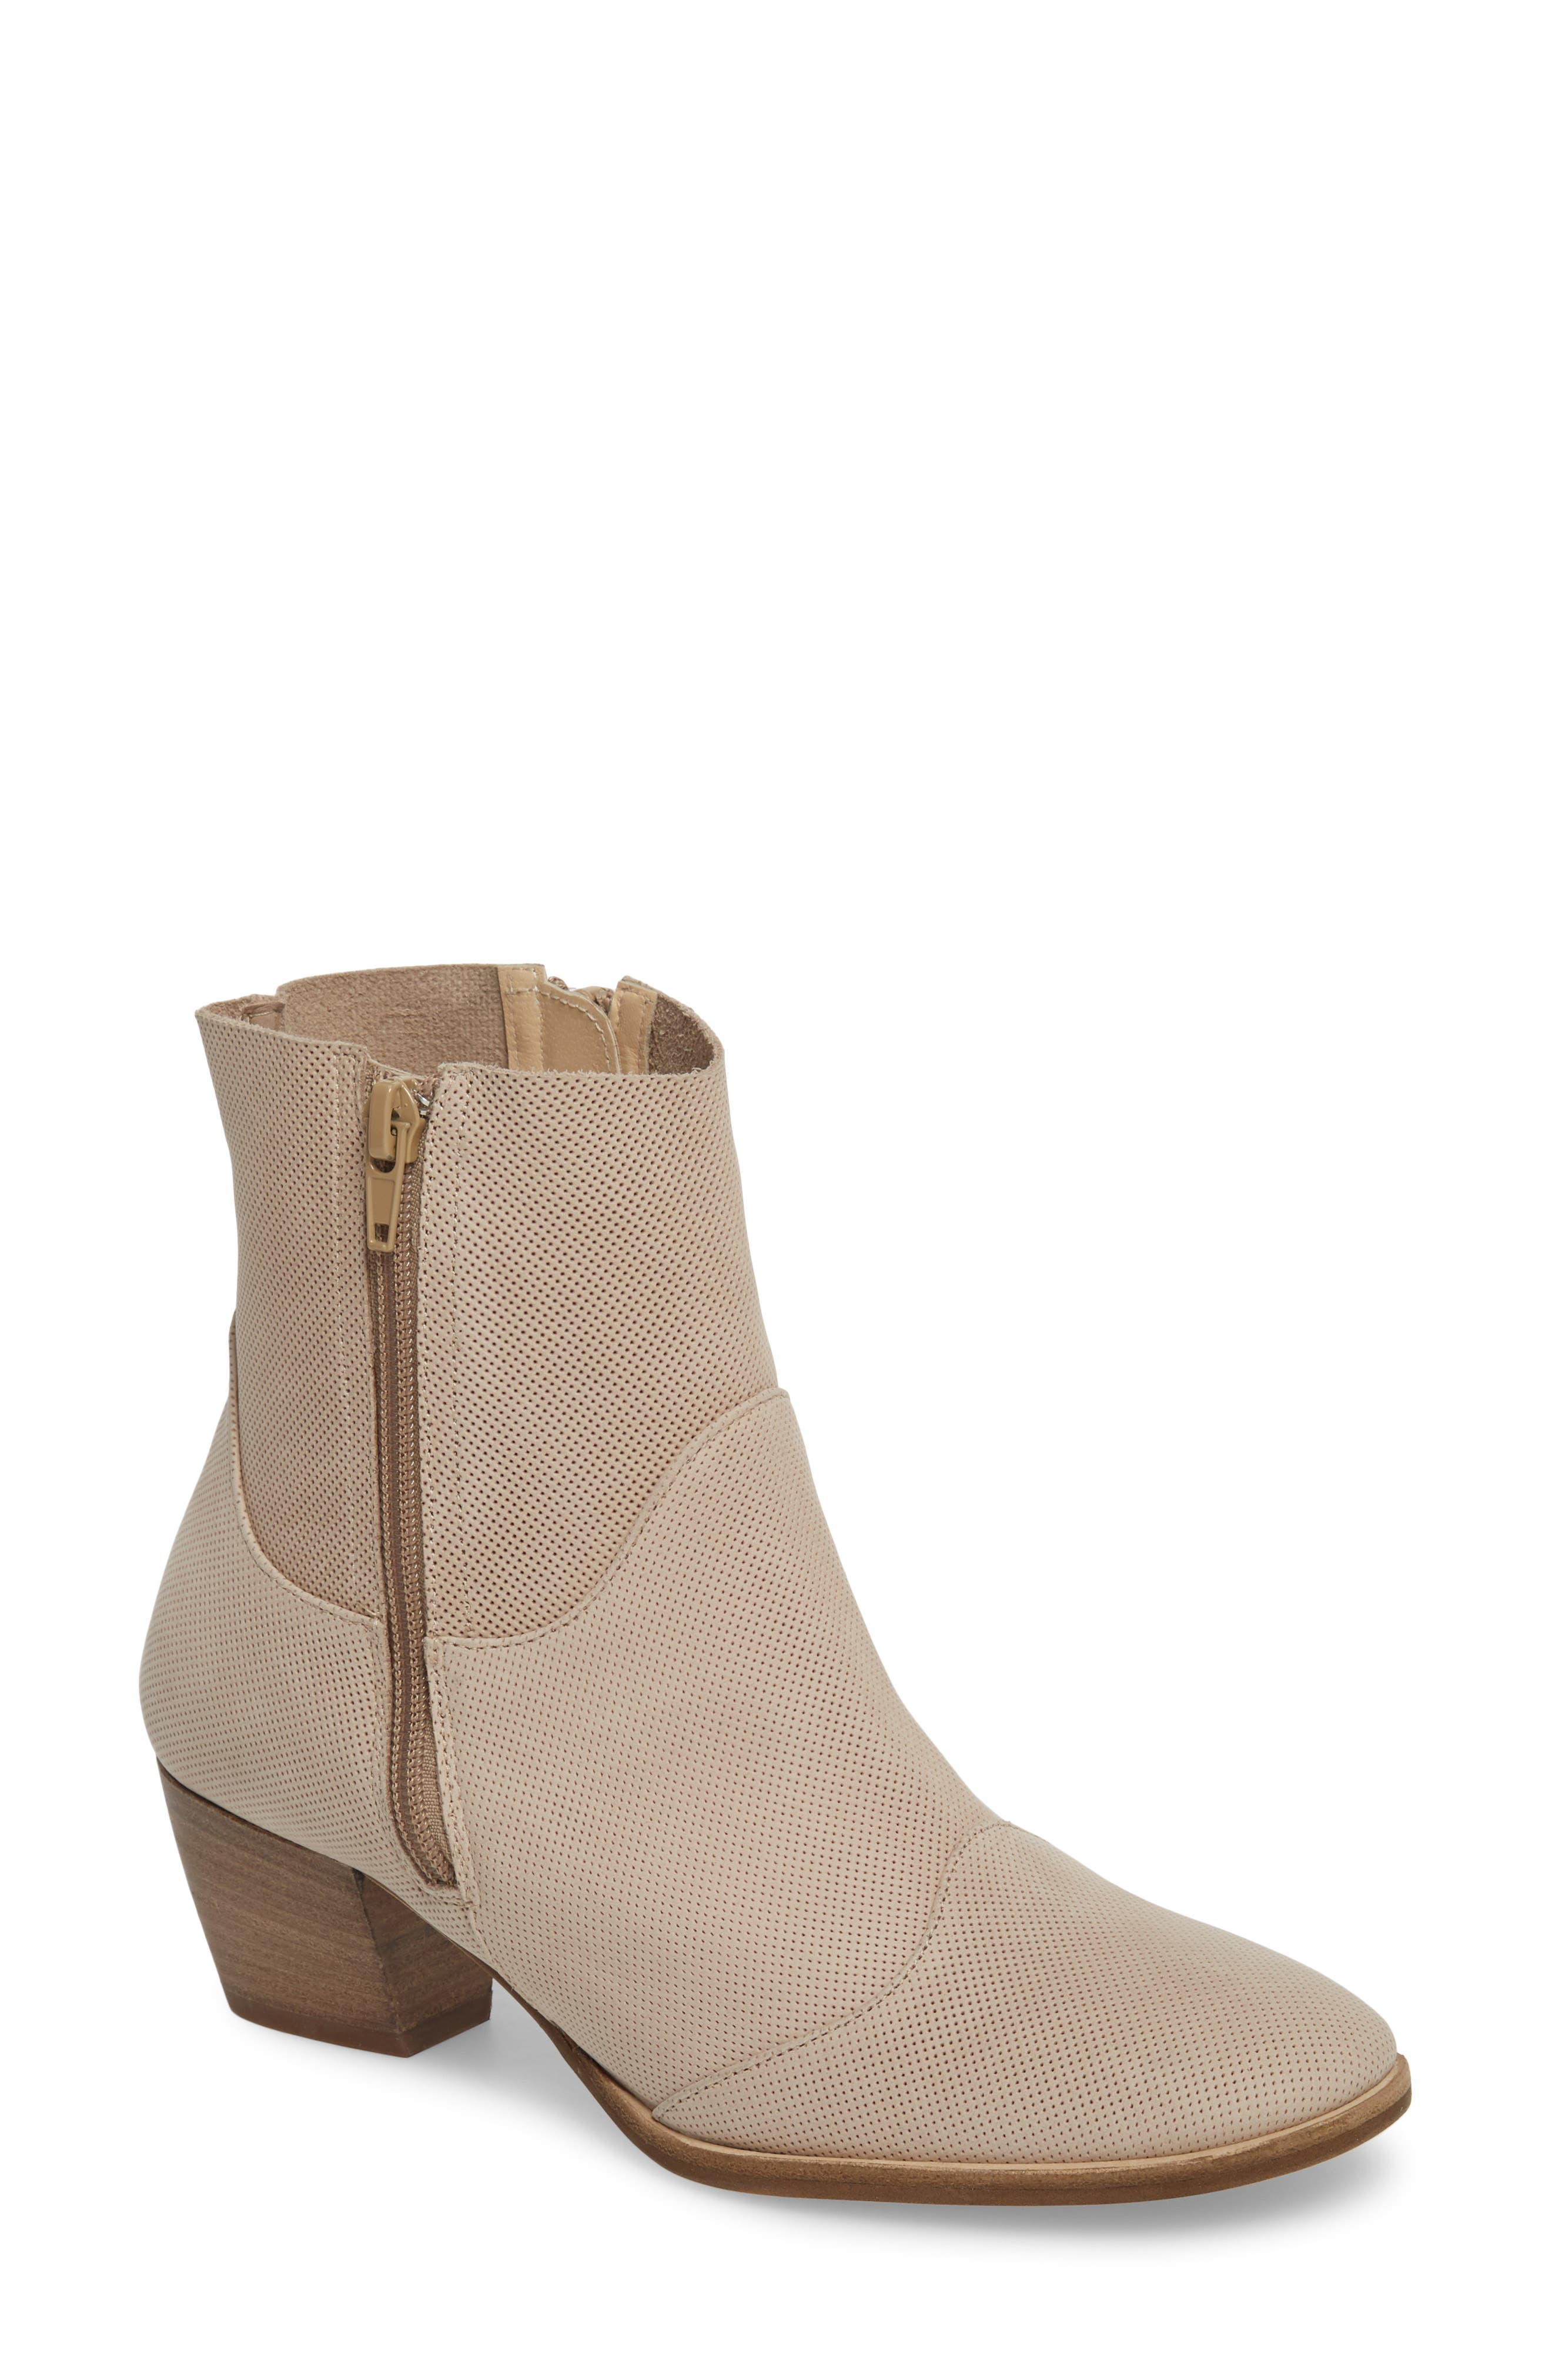 AMALFI BY RANGONI Robin Bootie in Natural Leather